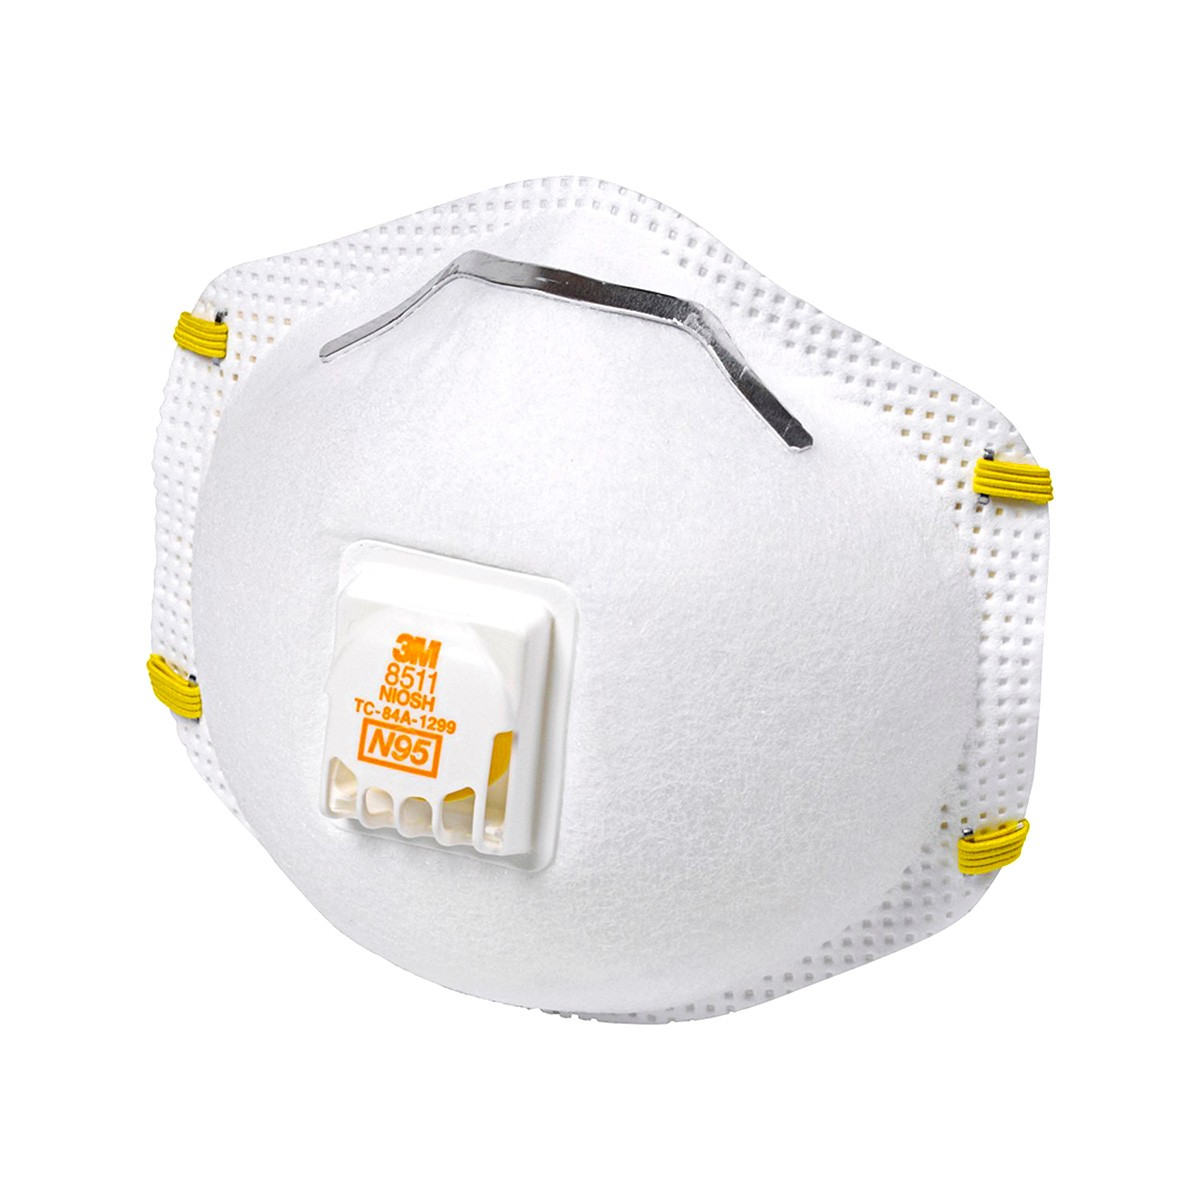 3m mask medical virus